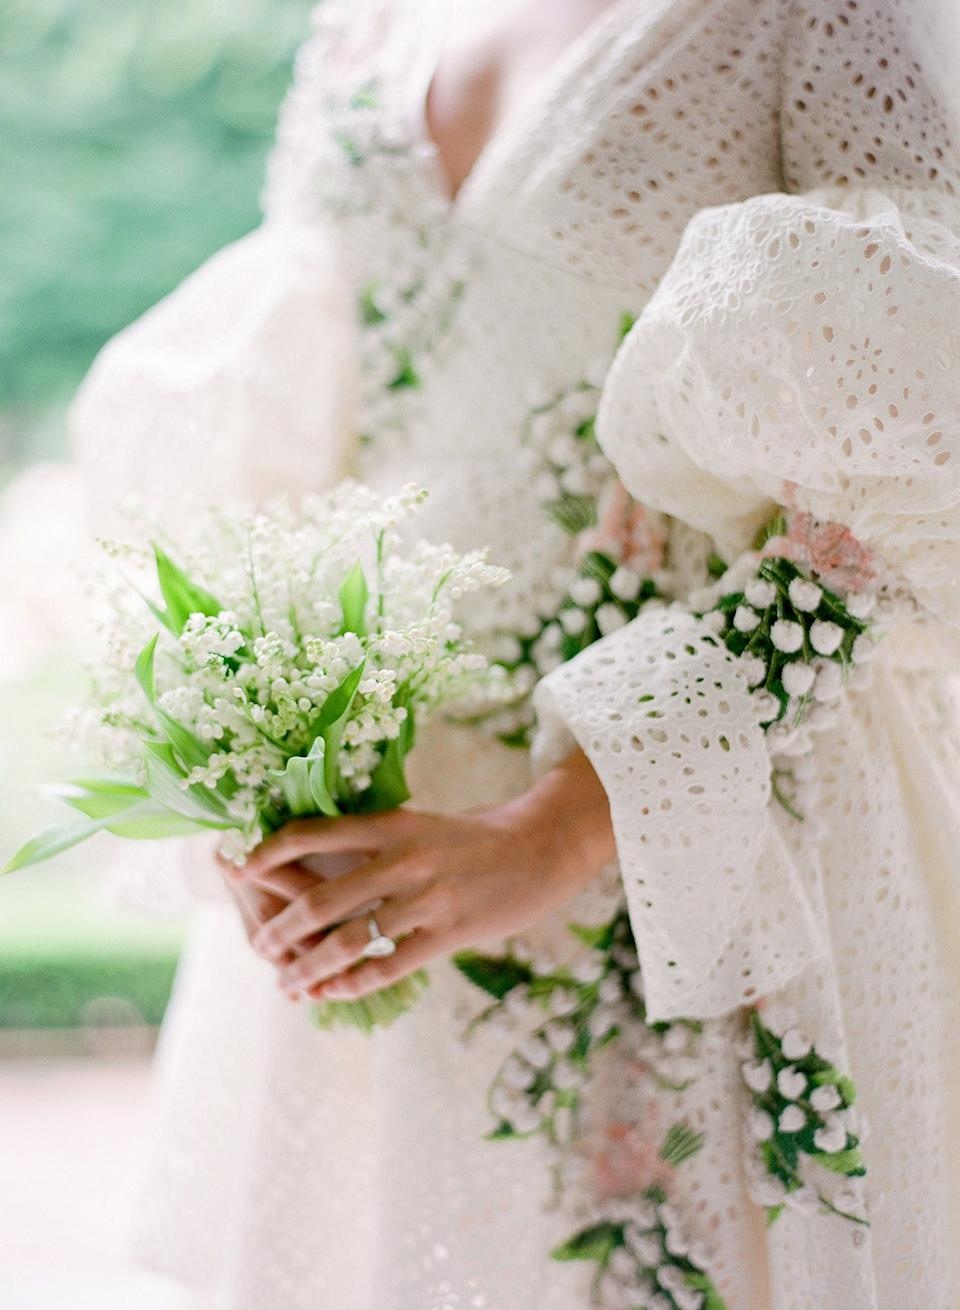 The bouquet! Inspired by the embroidered lily of the valley, Putnam & Putnam created the most beautiful bouquet wrapped in pale pink ribbon to match my dress.